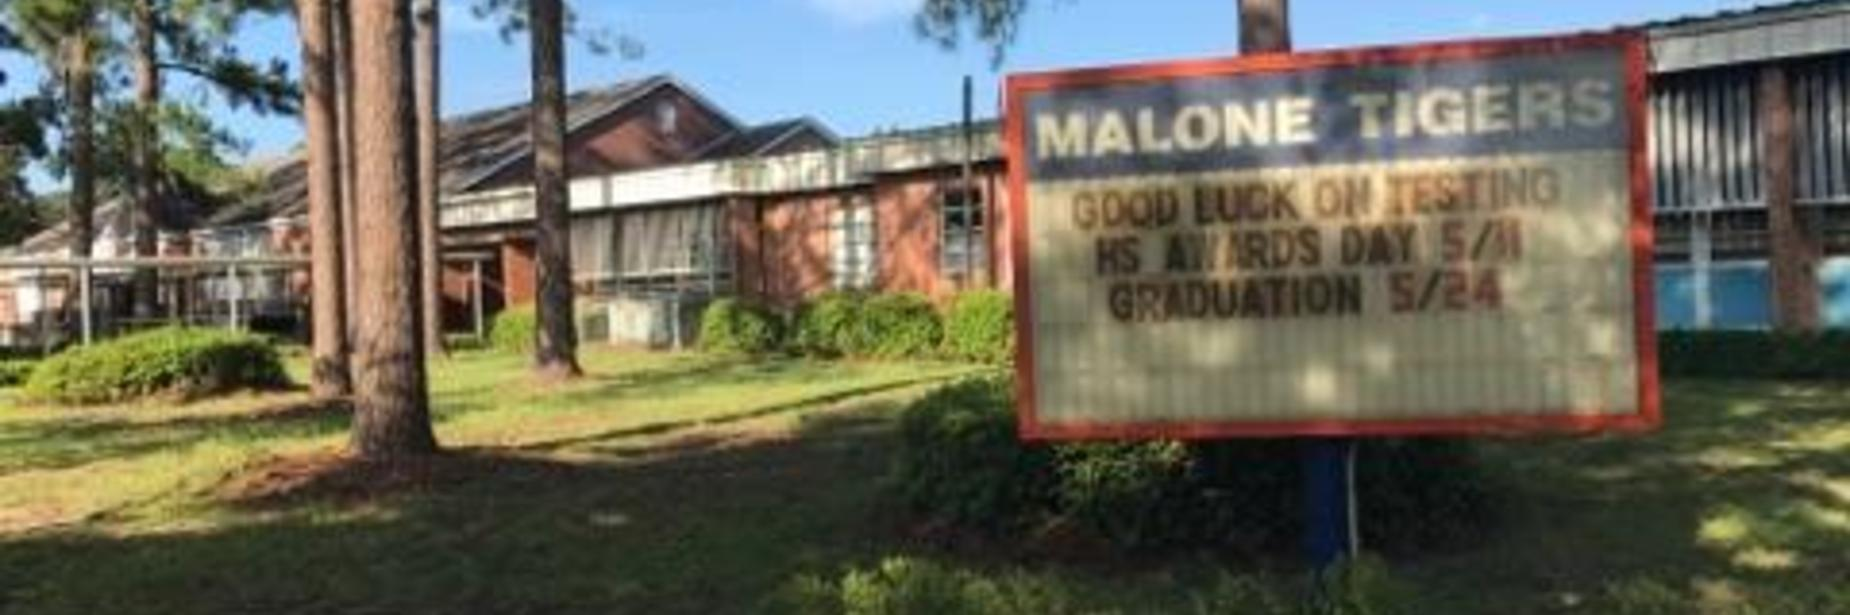 malone front of school